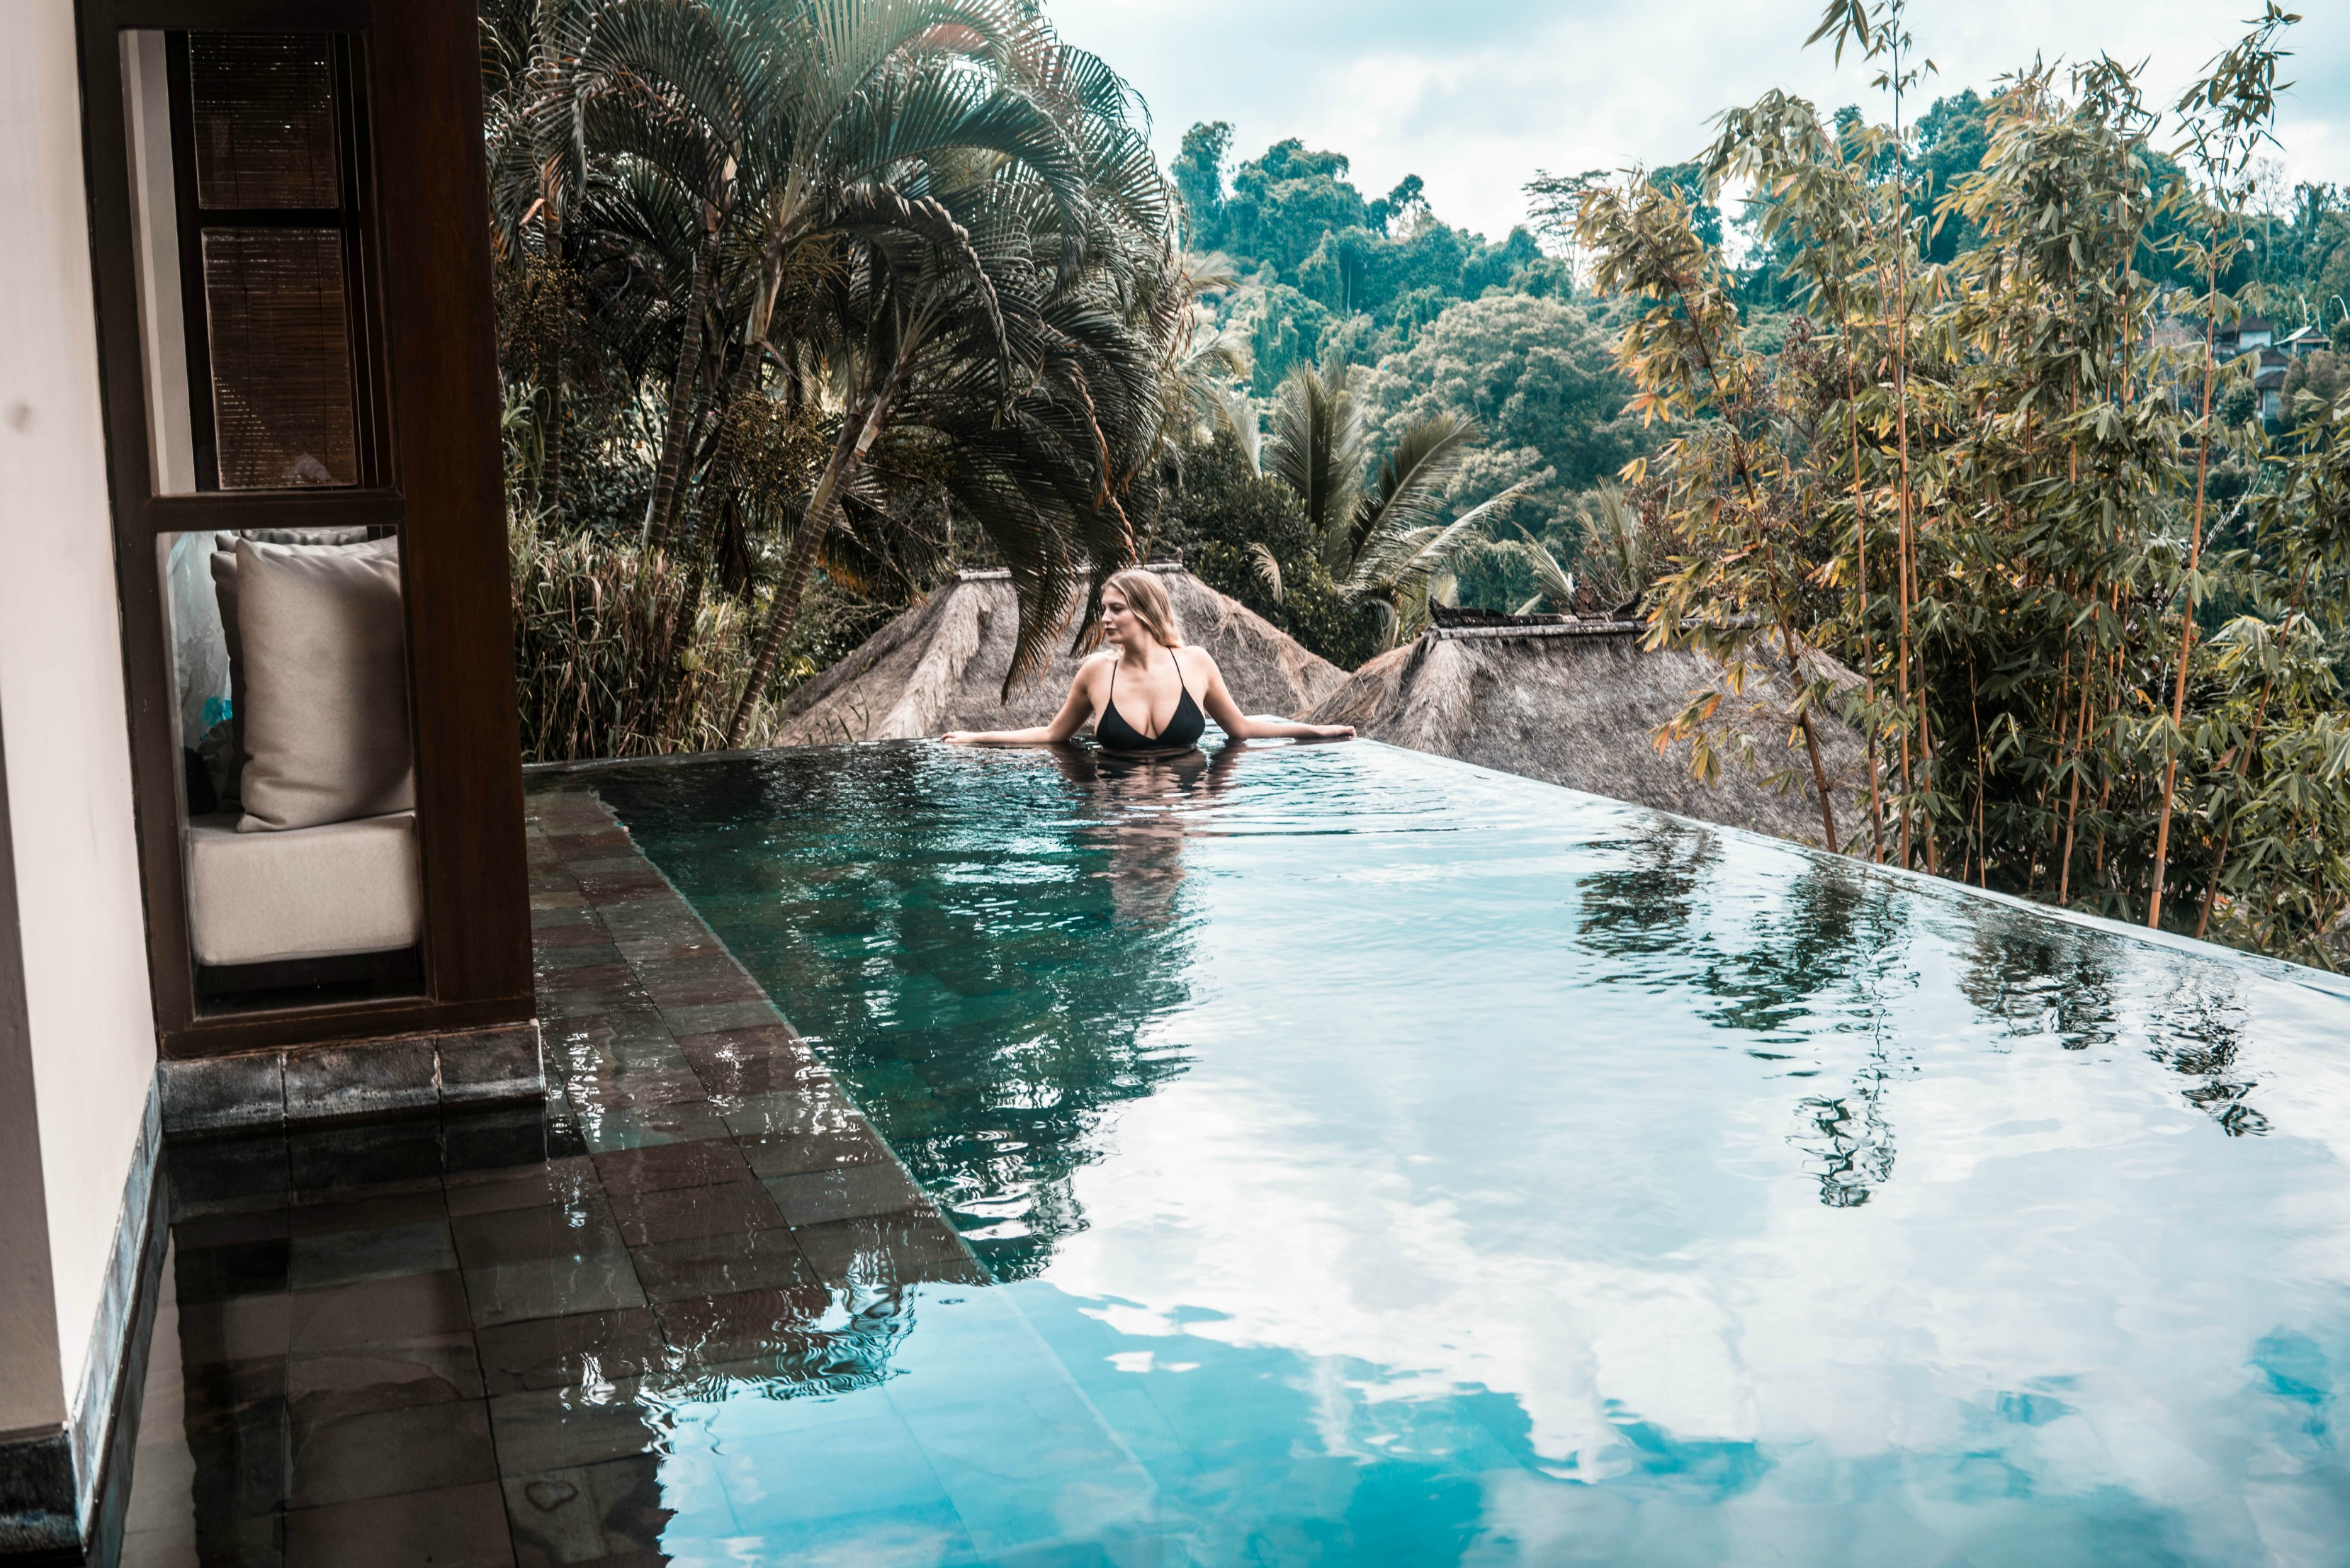 Hanging Gardens Of Bali Review